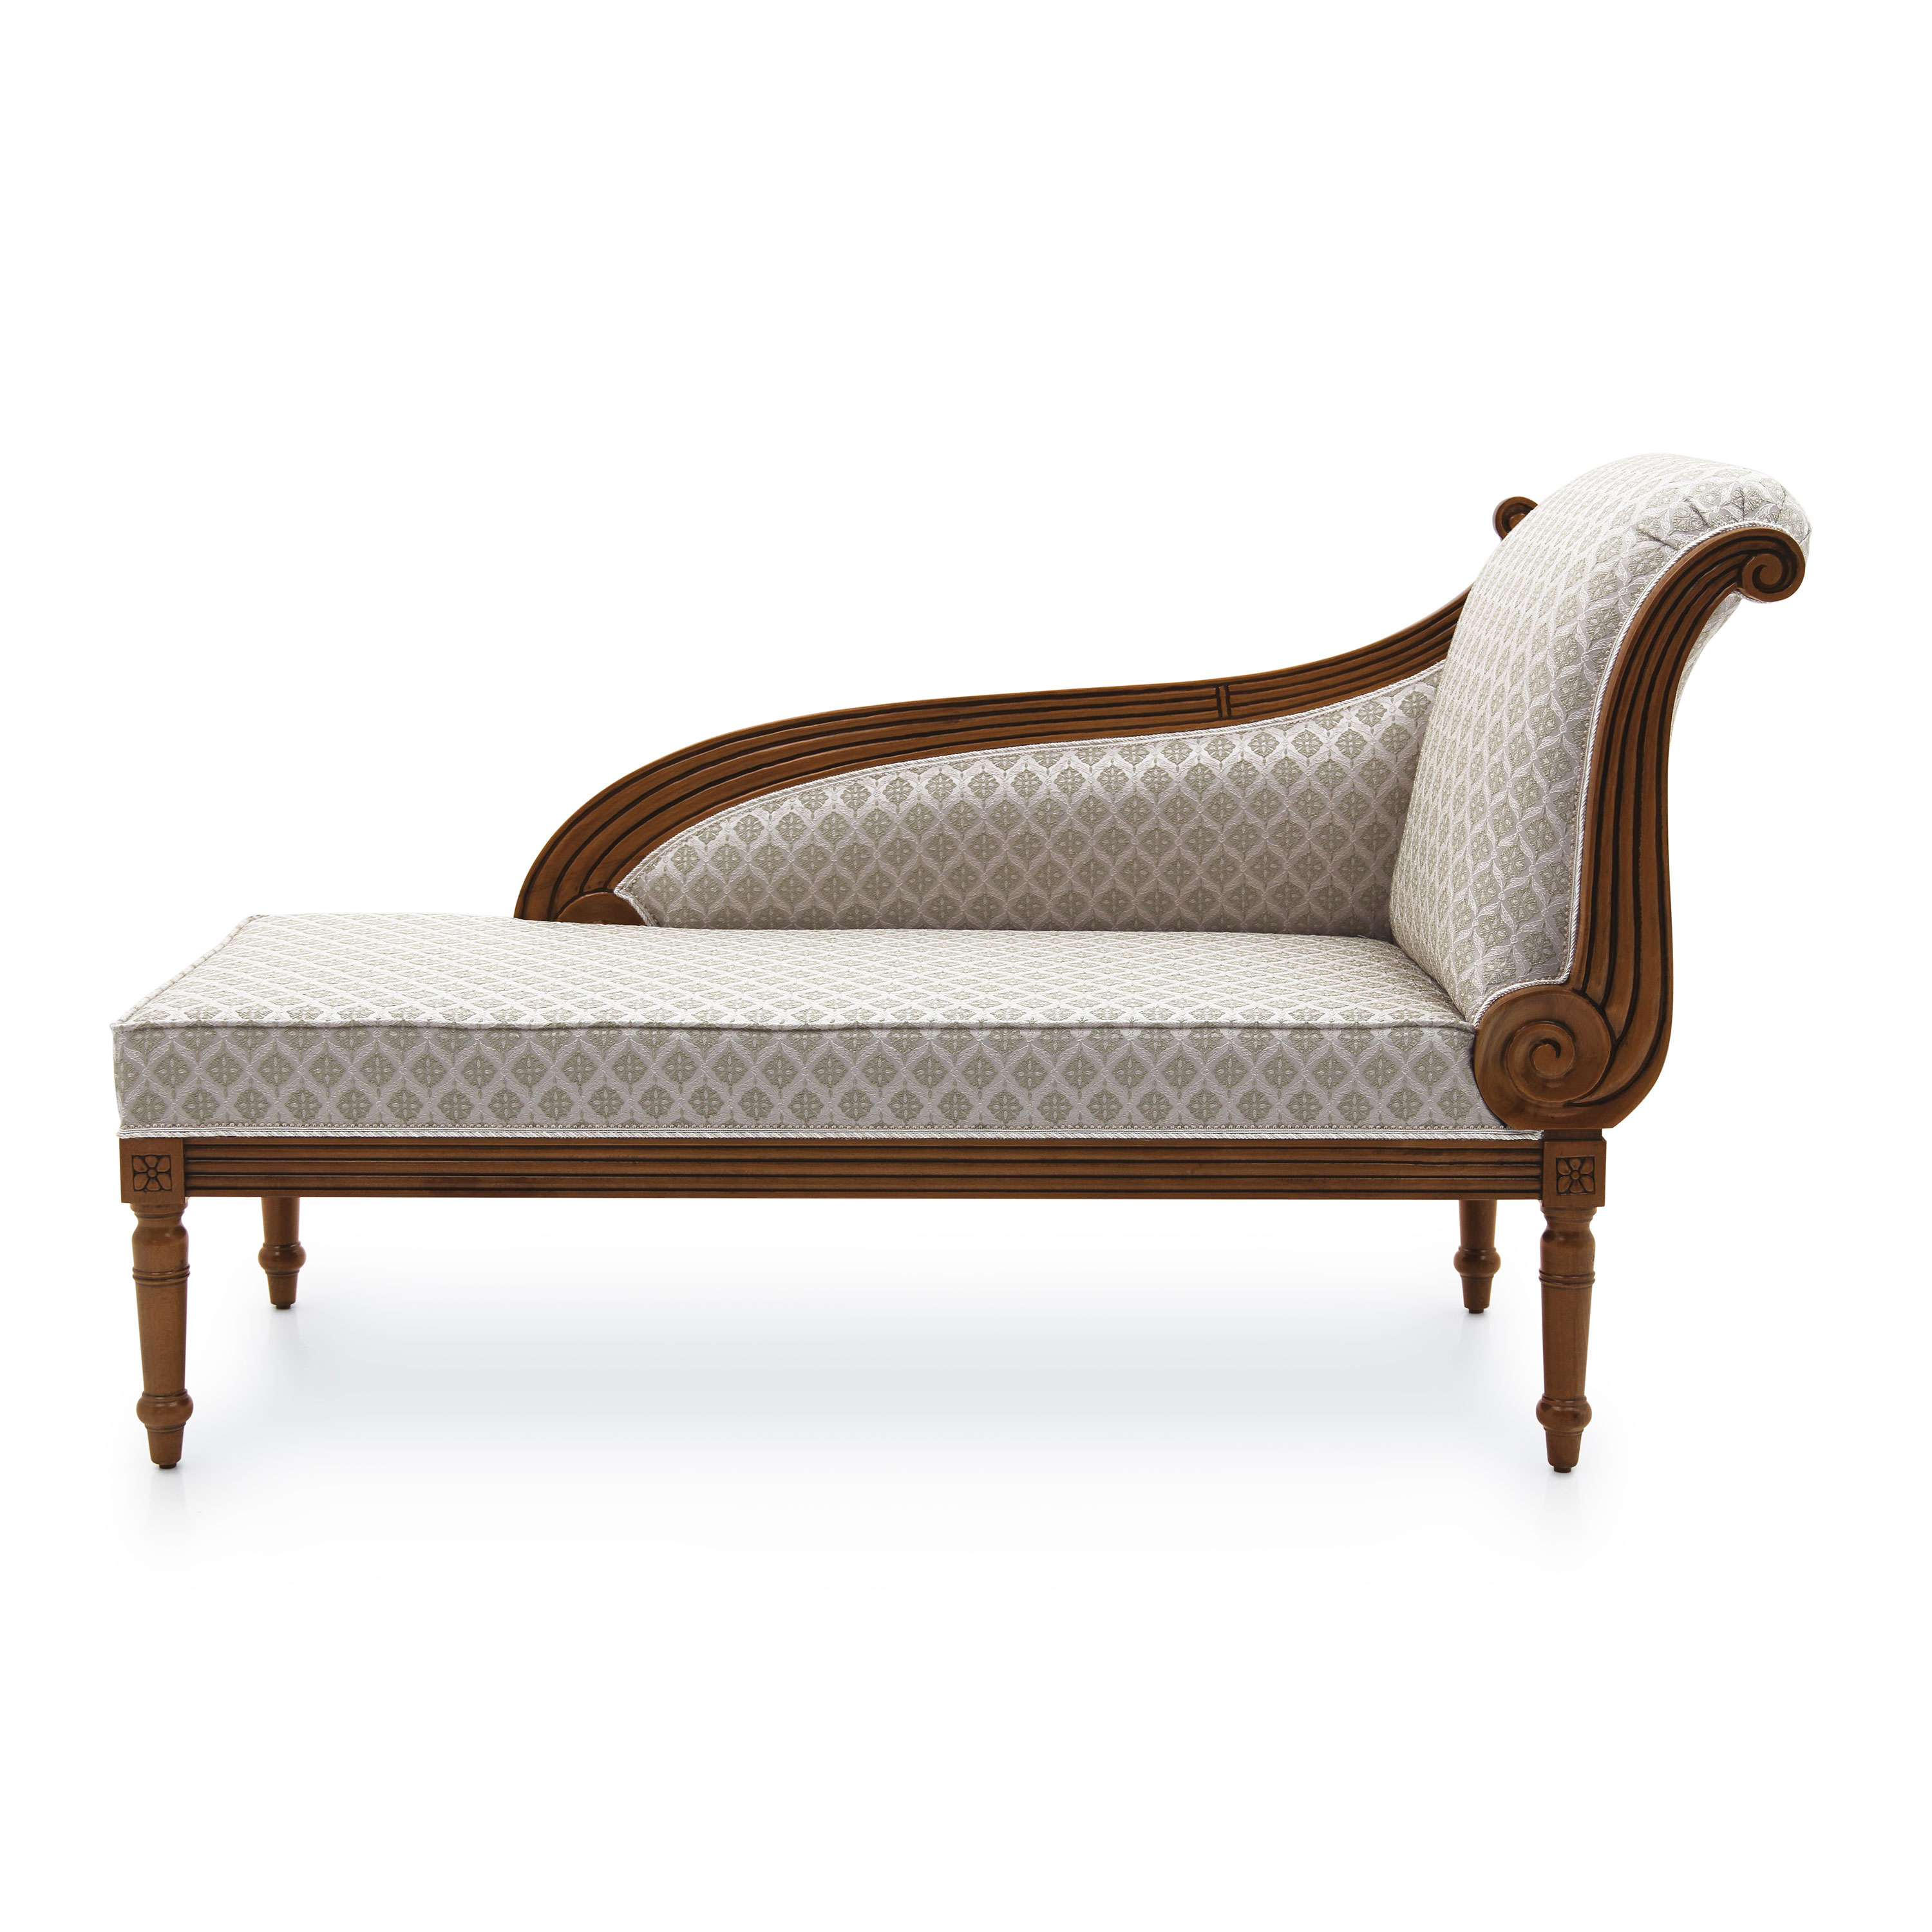 Chaise Style Classic Style Chaise Longue Made Of Wood Cerere 286 Sevensedie